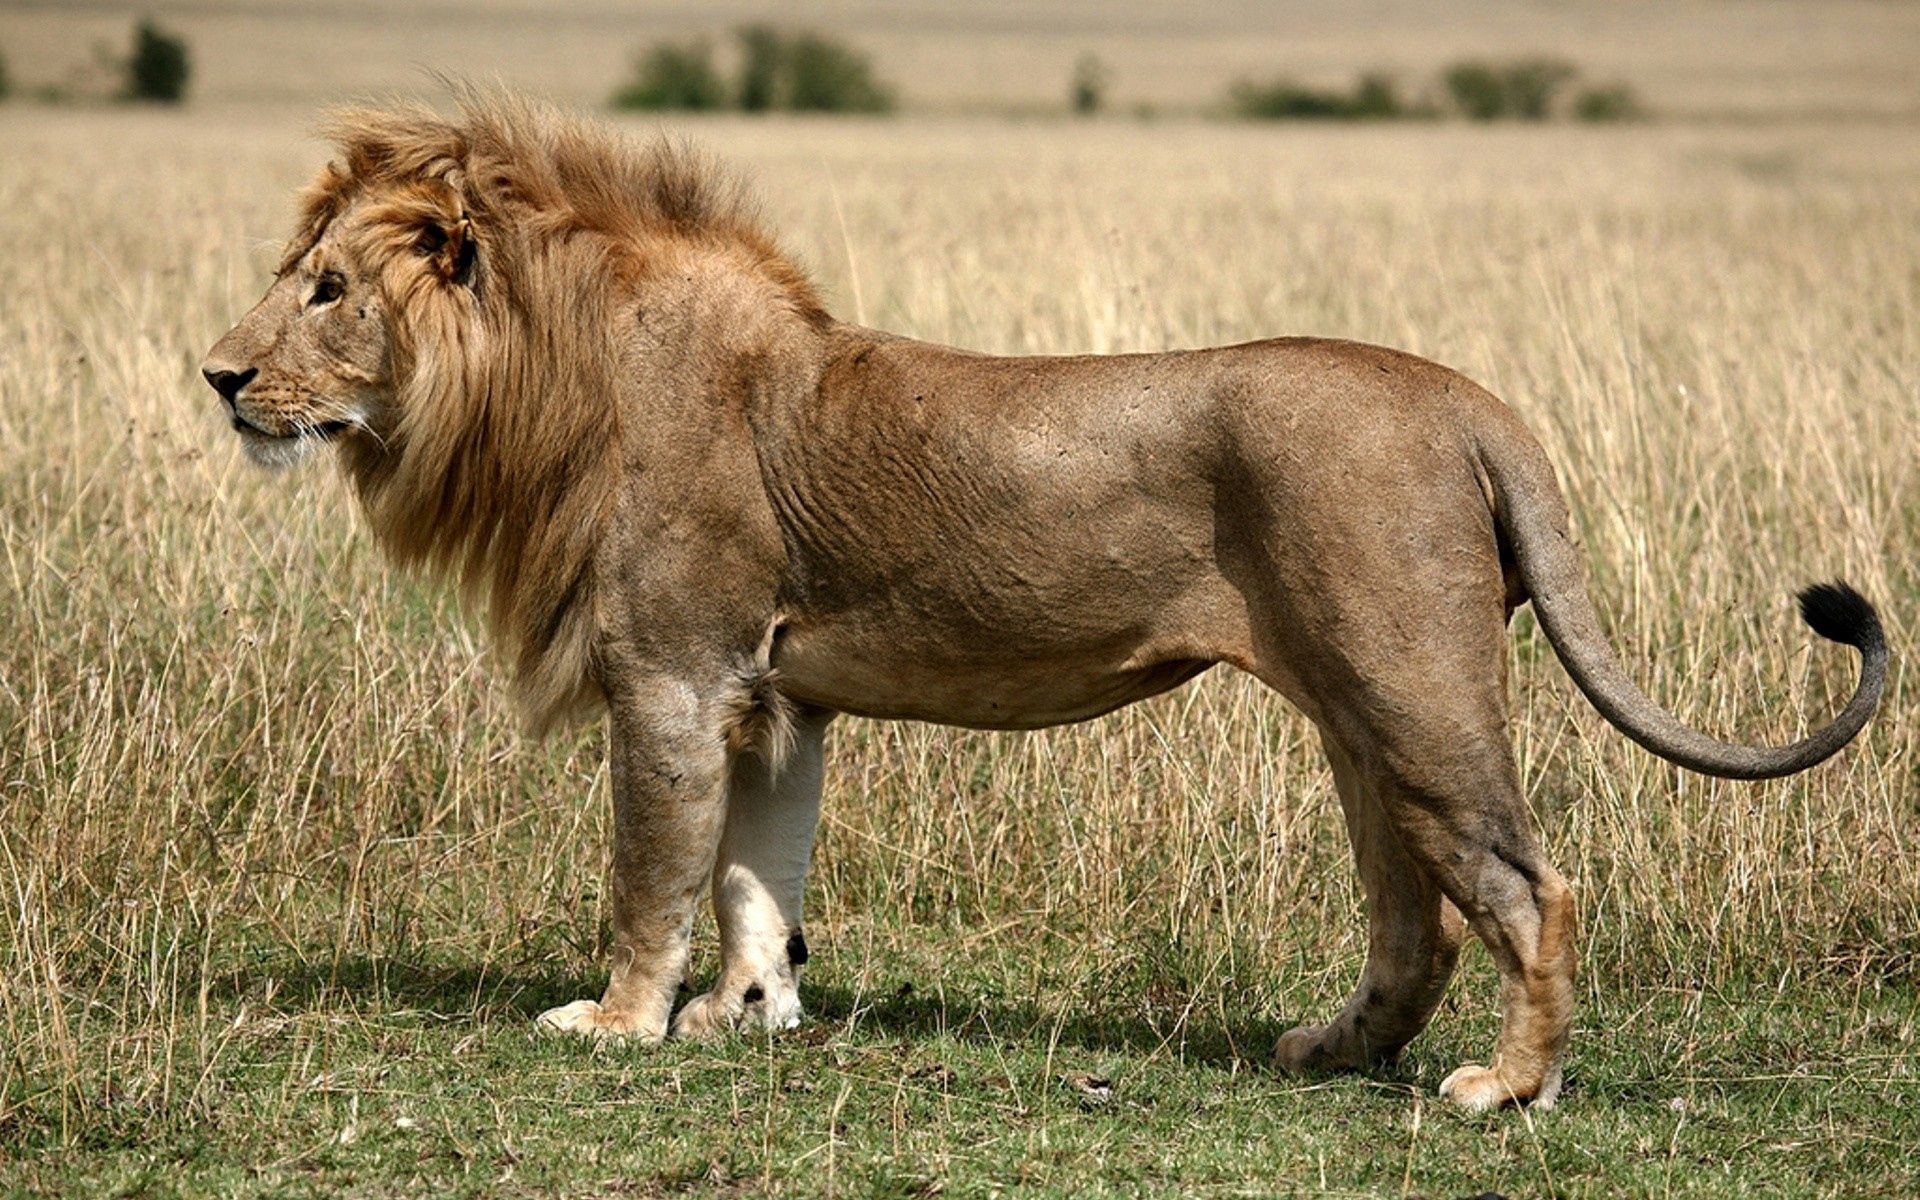 154077 download wallpaper Animals, Lion, Field, Grass, King Of Beasts, King Of The Beasts screensavers and pictures for free